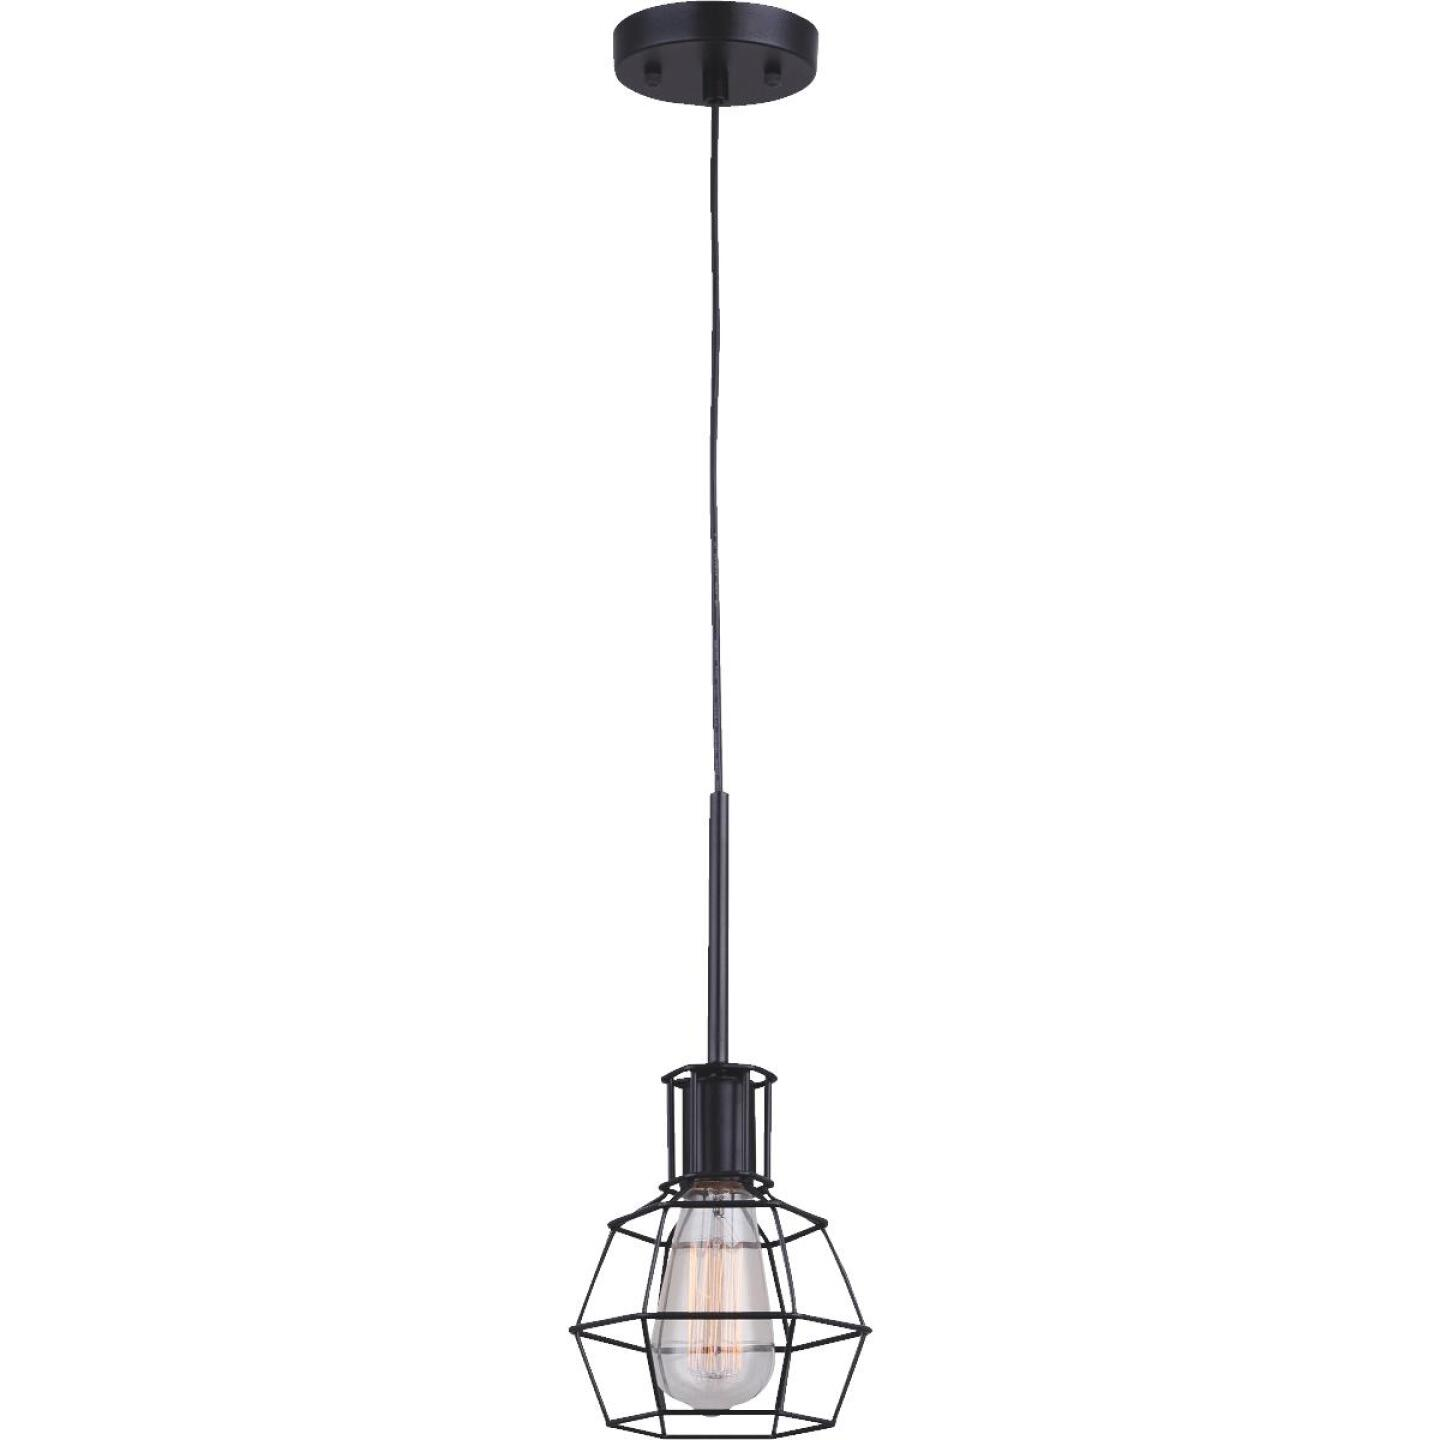 Home Impressions 1-Bulb Black Incandescent Hexagon Cage Style Pendant Light Fixture Image 1